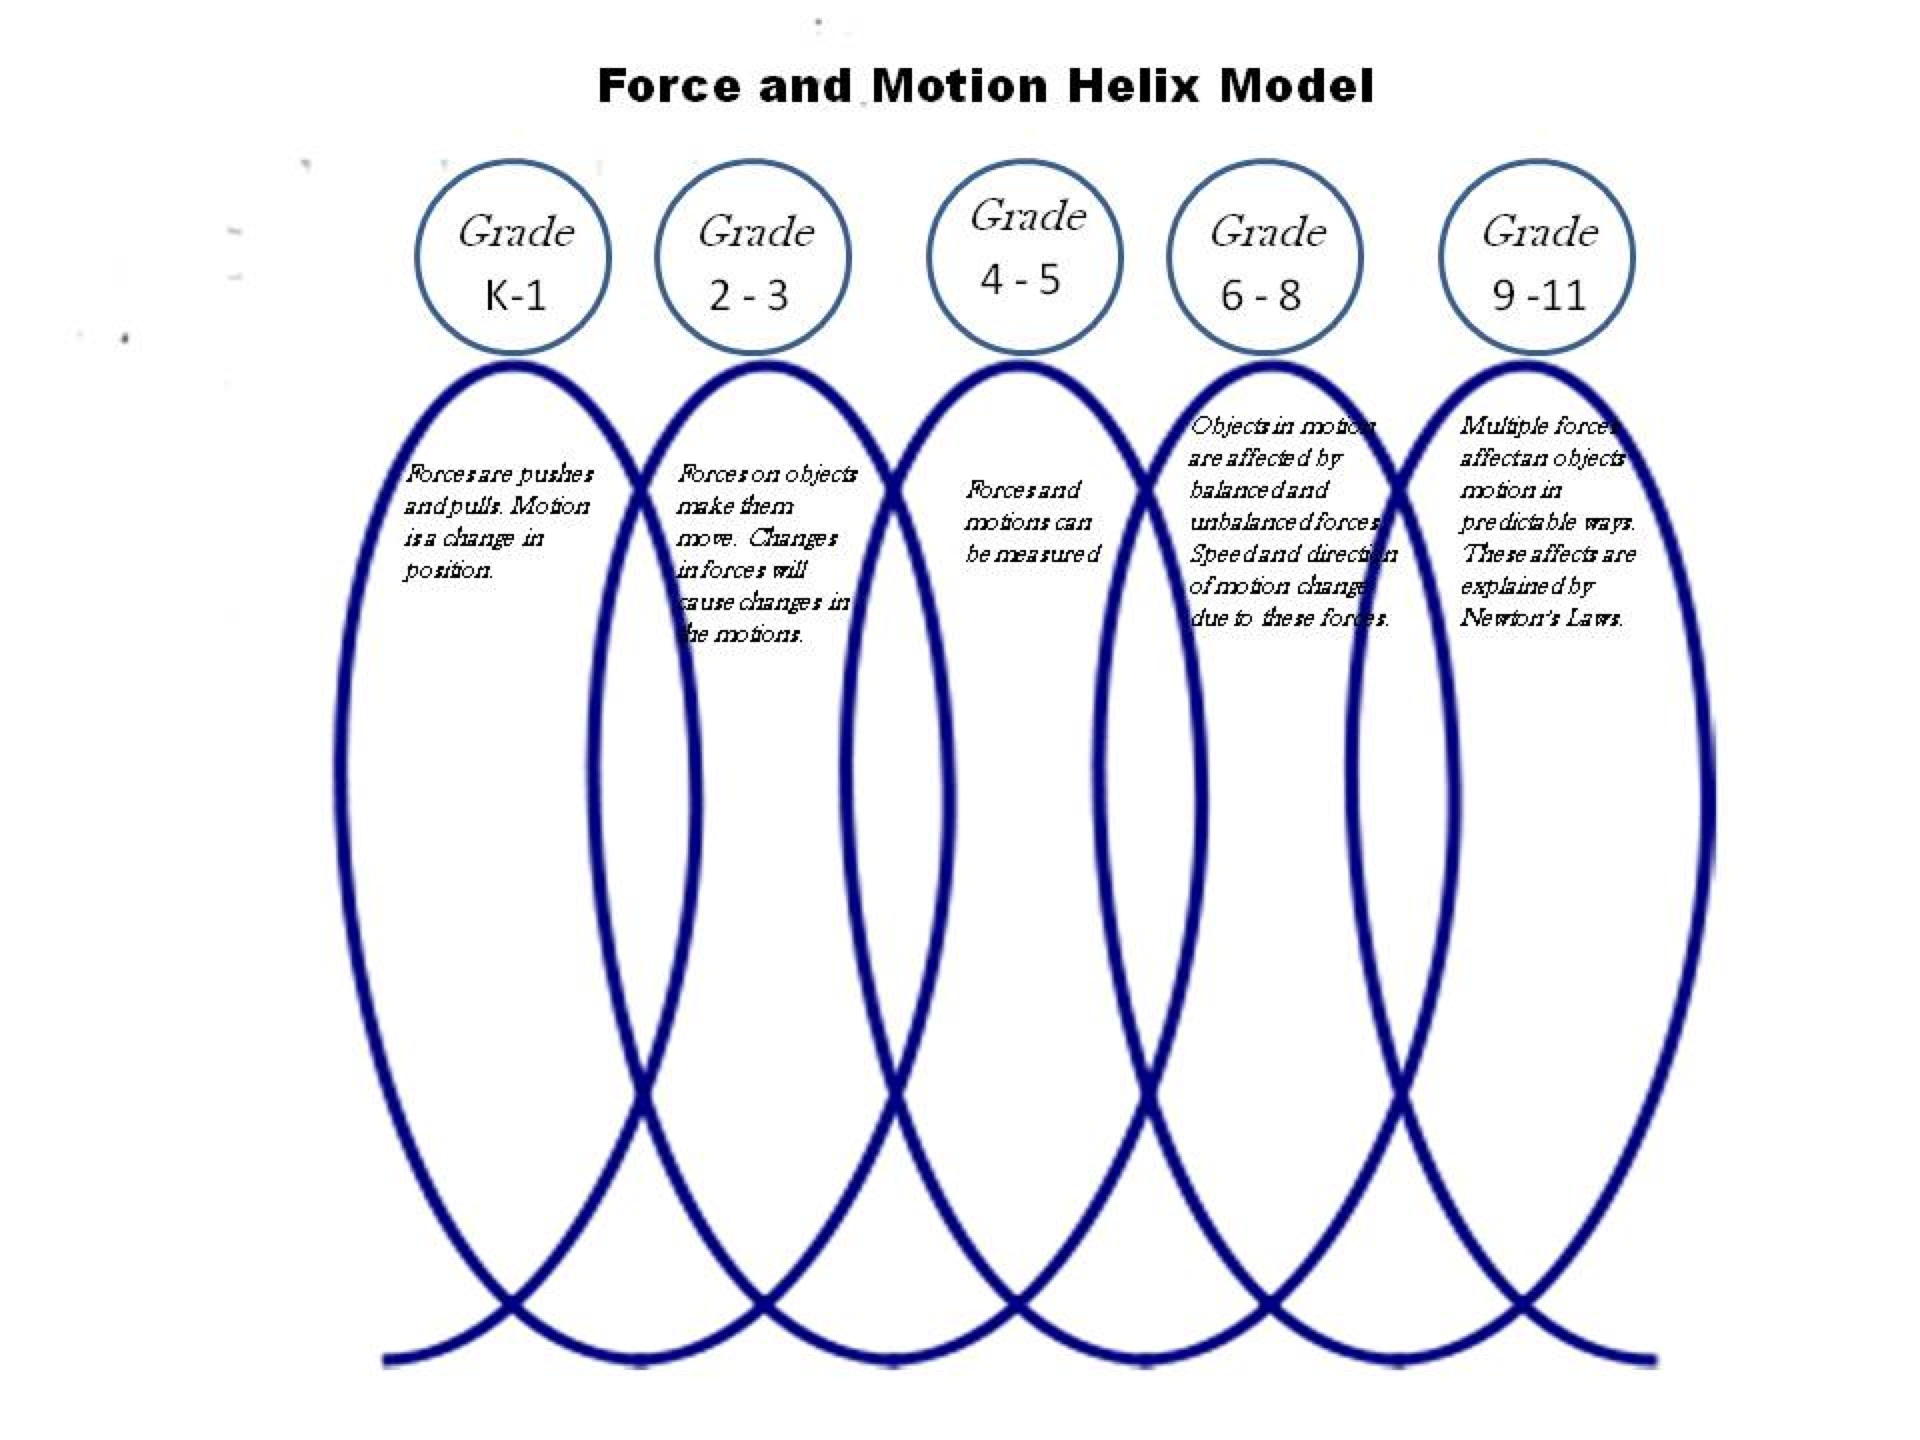 Force and Motion Helix Model - K-12 Learning